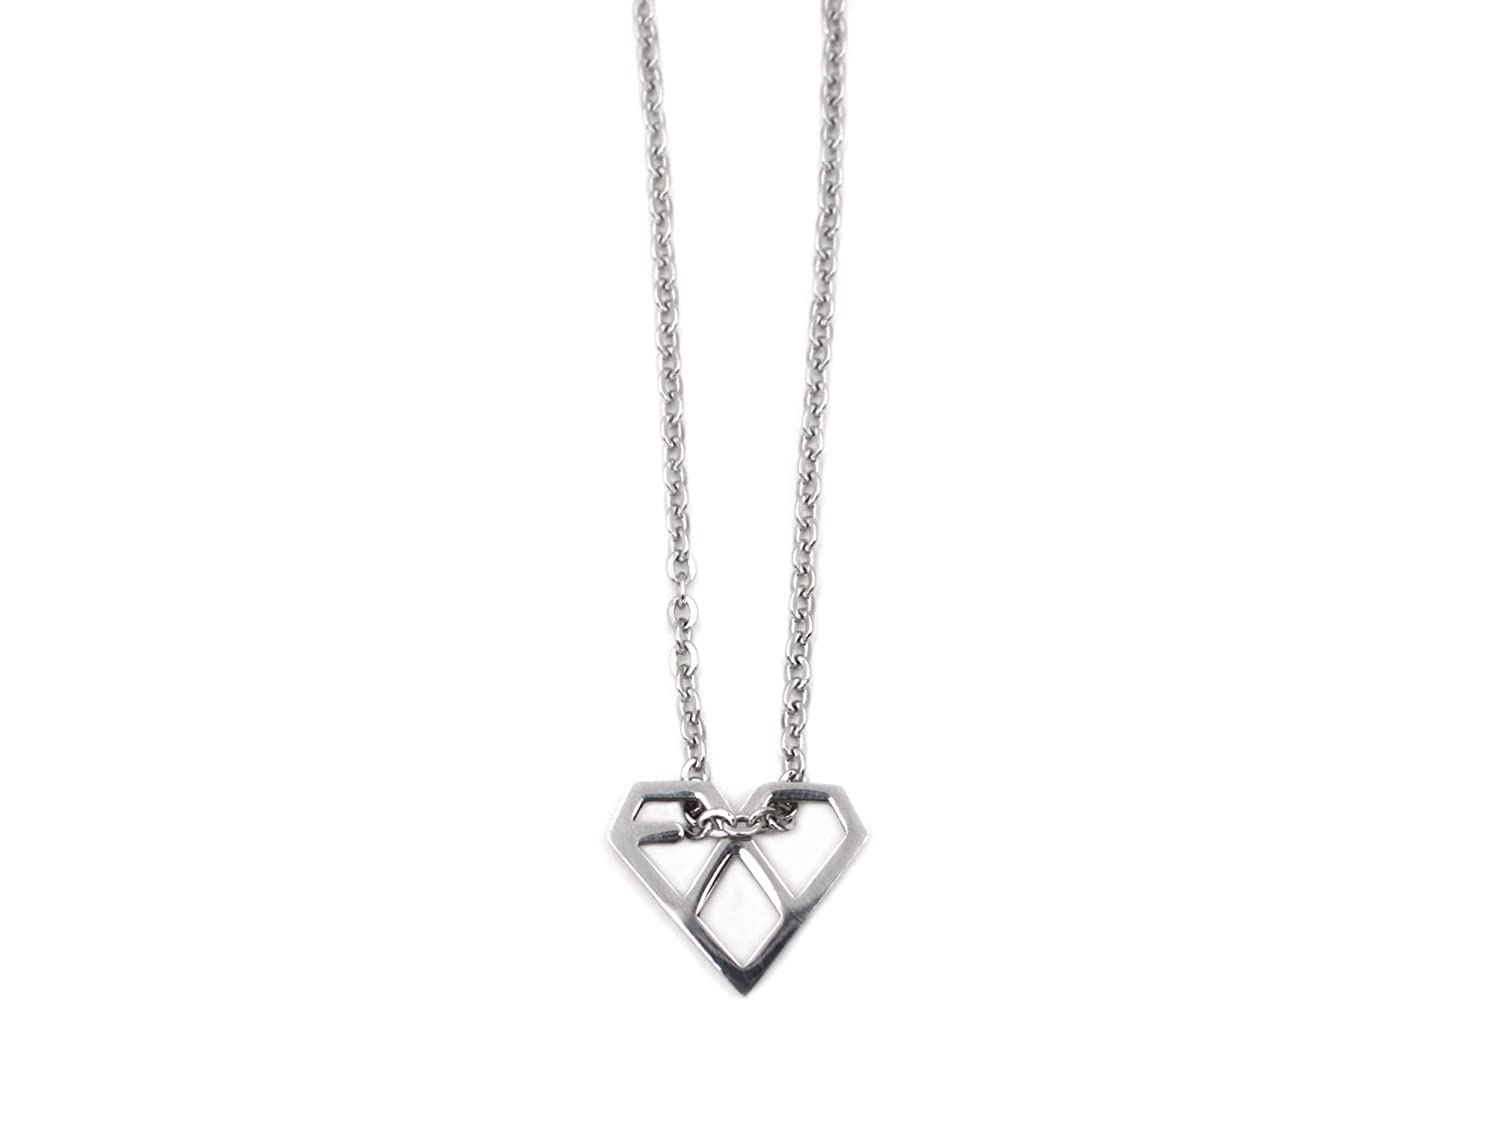 Fanstown Kpop EXO Necklace Titanium Mini Size Official Same Style Merchandise Accessories Send with Lomo Card and Gift Box